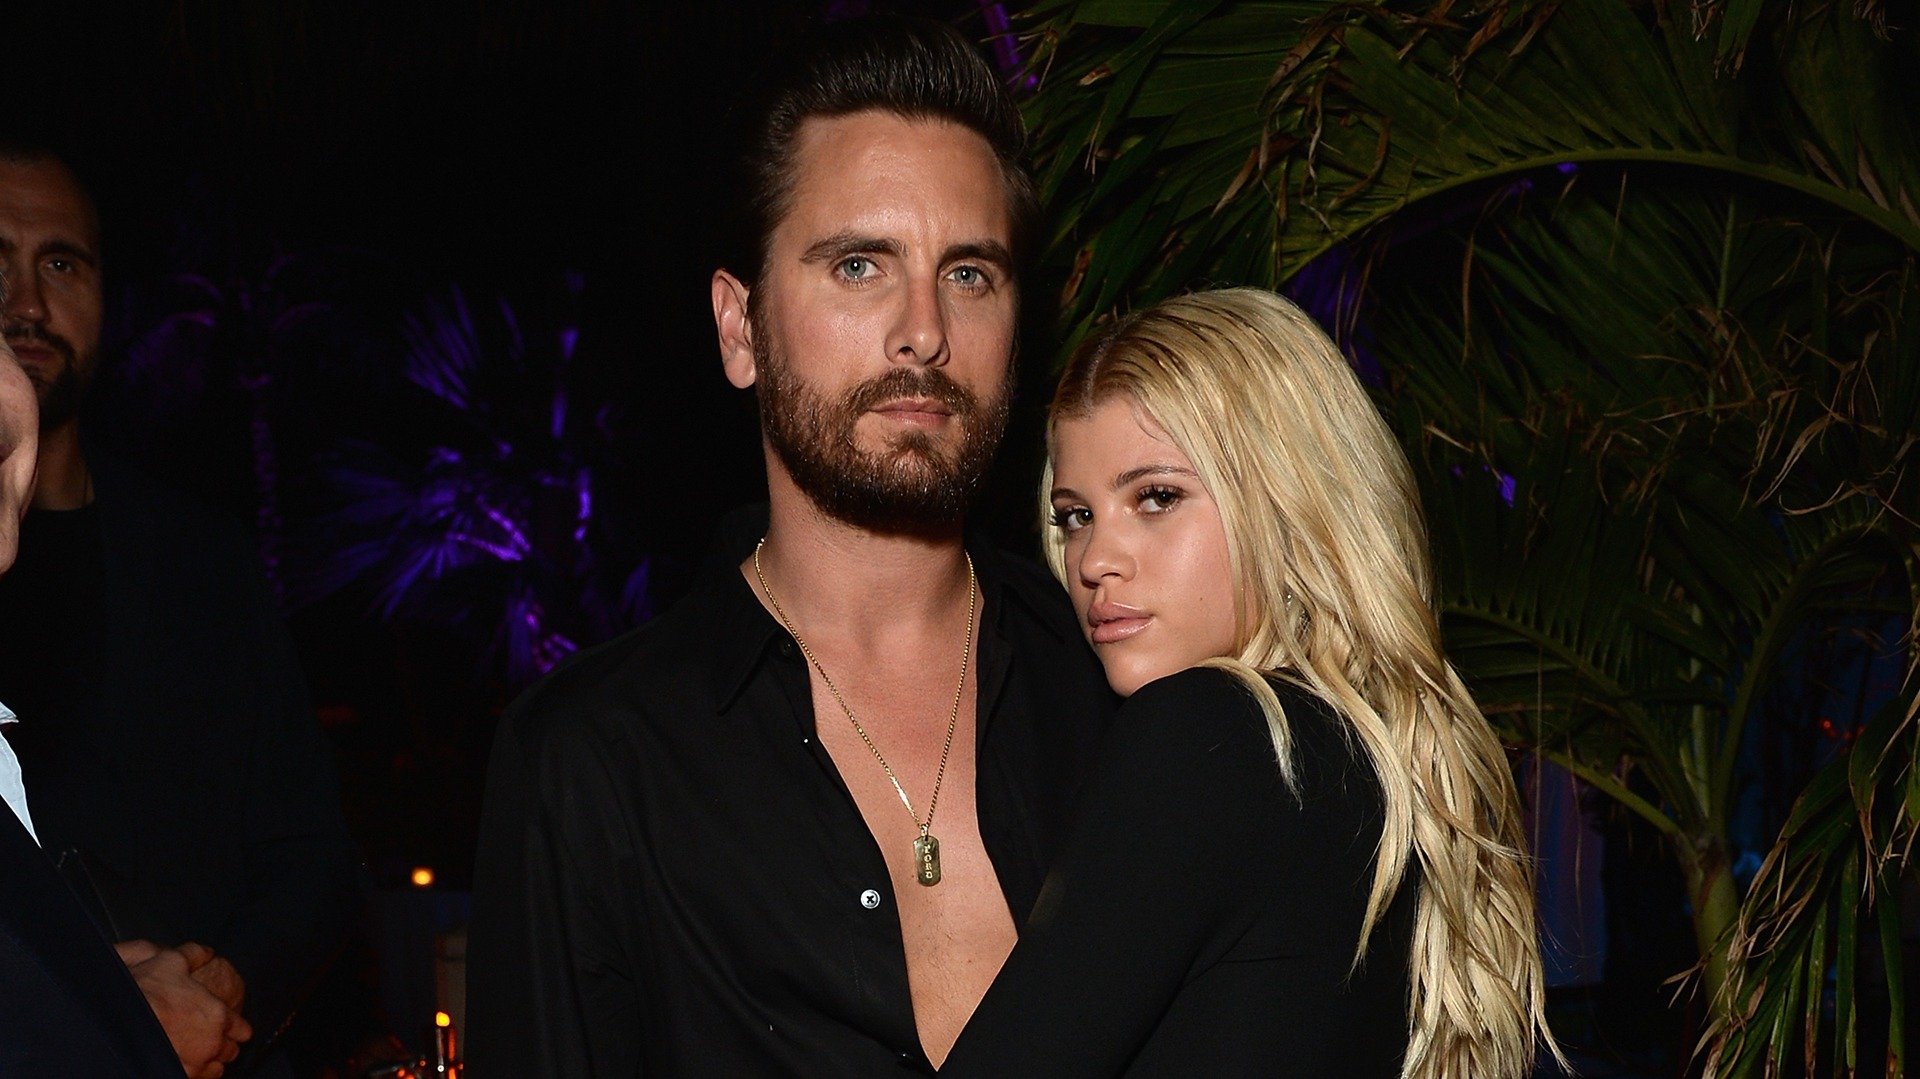 Scott Disick Surprises Sofia Richie With A New Car for Her 21st Birthday 1468353795